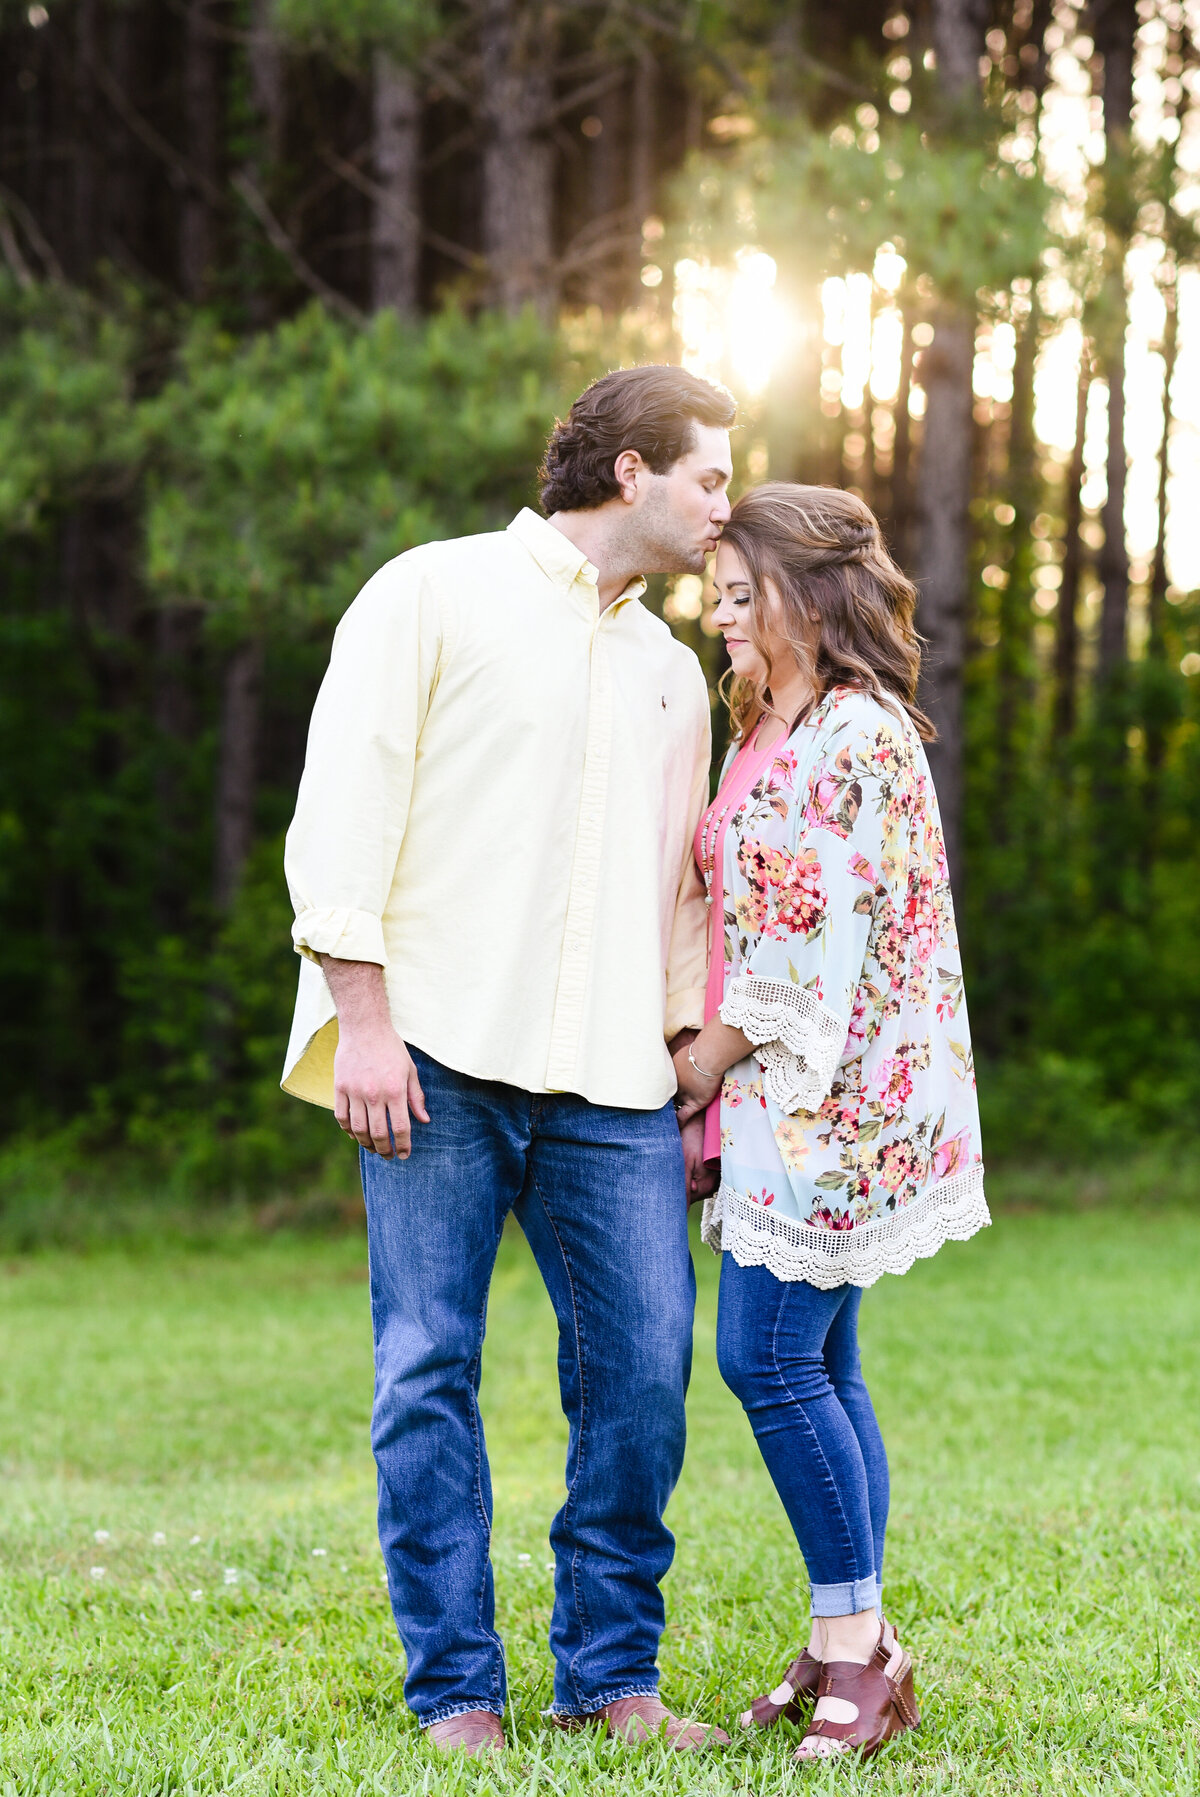 Beautiful Mississippi Engagement Photography: groom kisses bride in forest at sunset in Mississippi